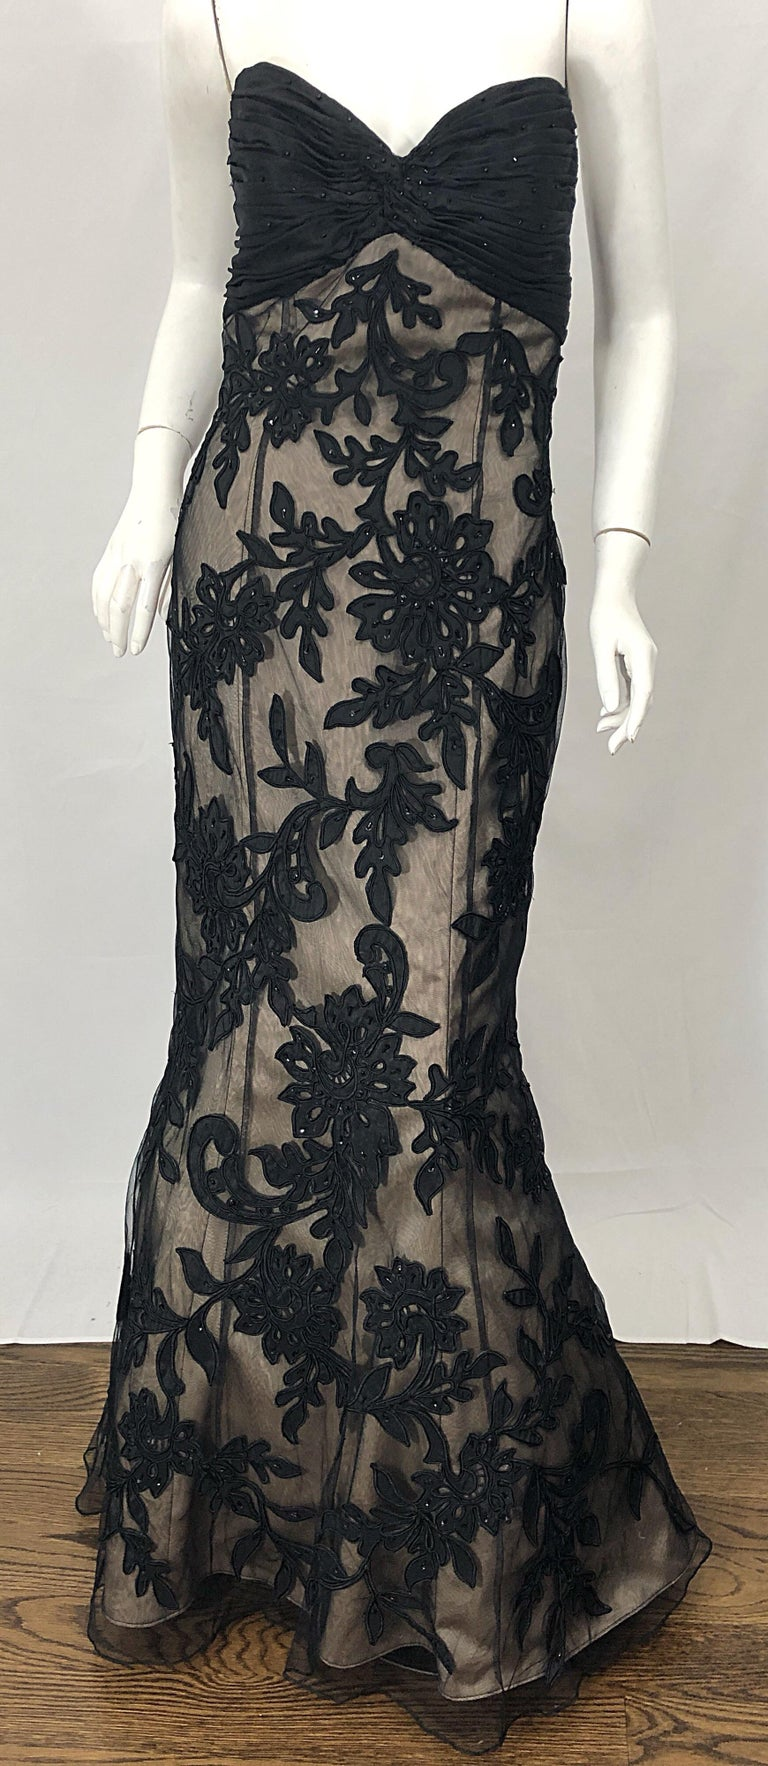 Vintage Bill Blass Couture Size 4 / 6 Black + Nude Beaded Strapless Mermaid Gown For Sale 4